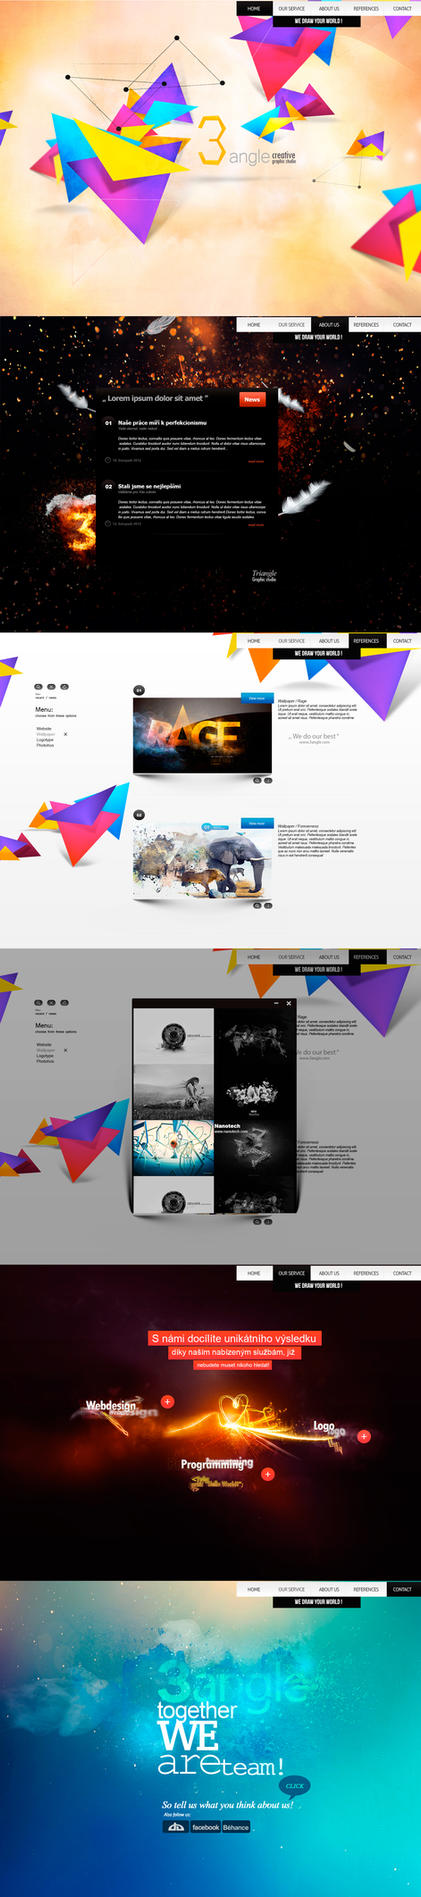 3angle creative graphic studio by ArsiZyr